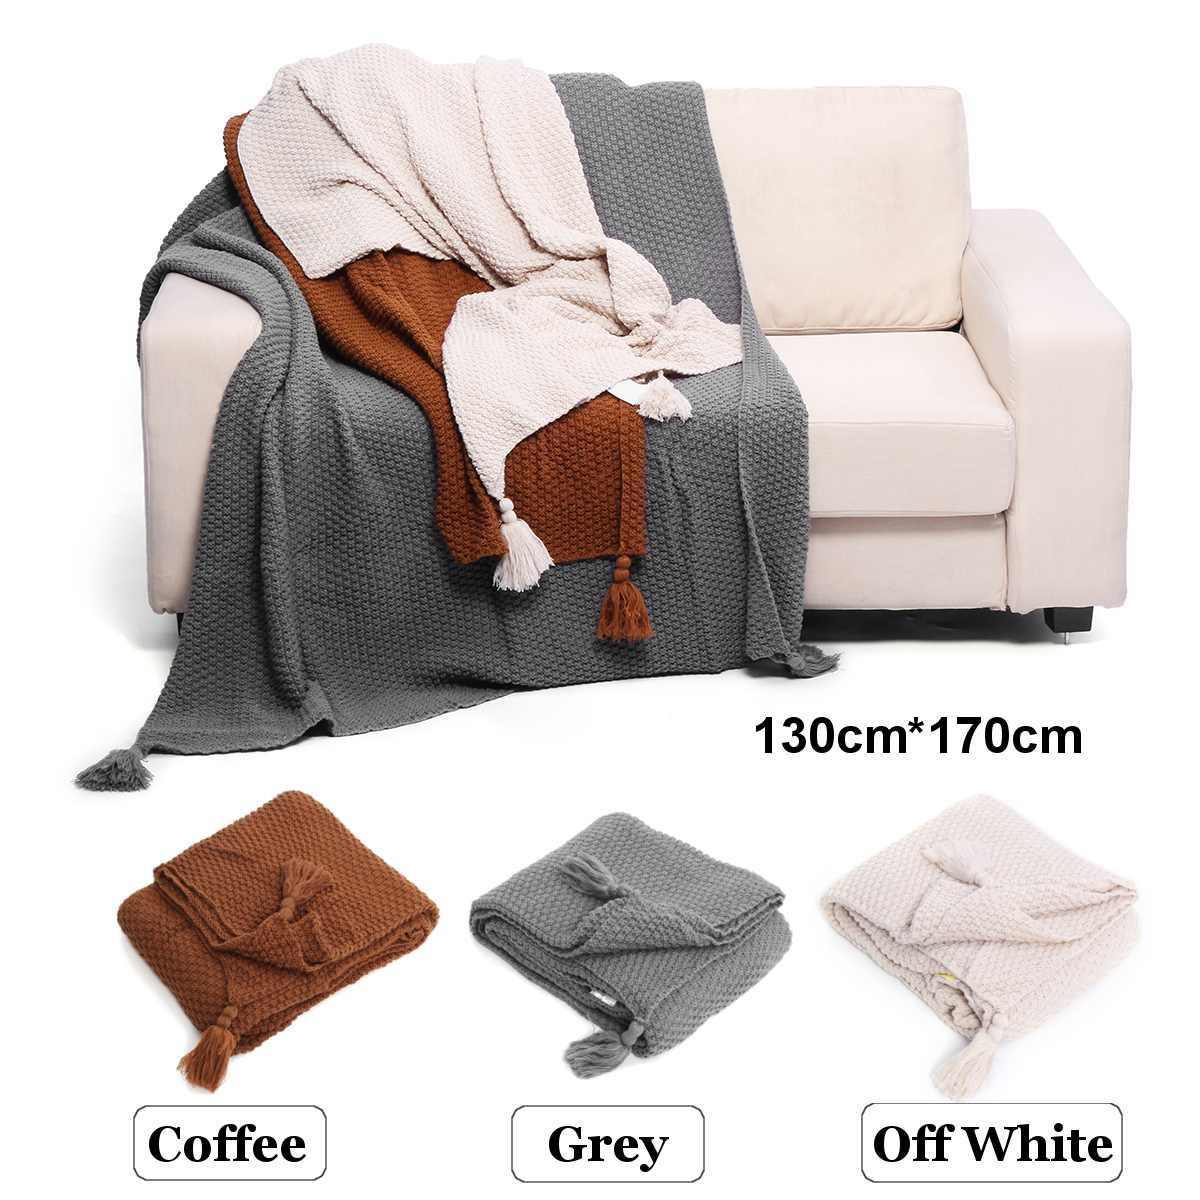 Solid Color Air Conditioning Travel Blanket With Tassel Knitted Blanket for Bed Sofa Home Textile Throw Blanket 130x170cm